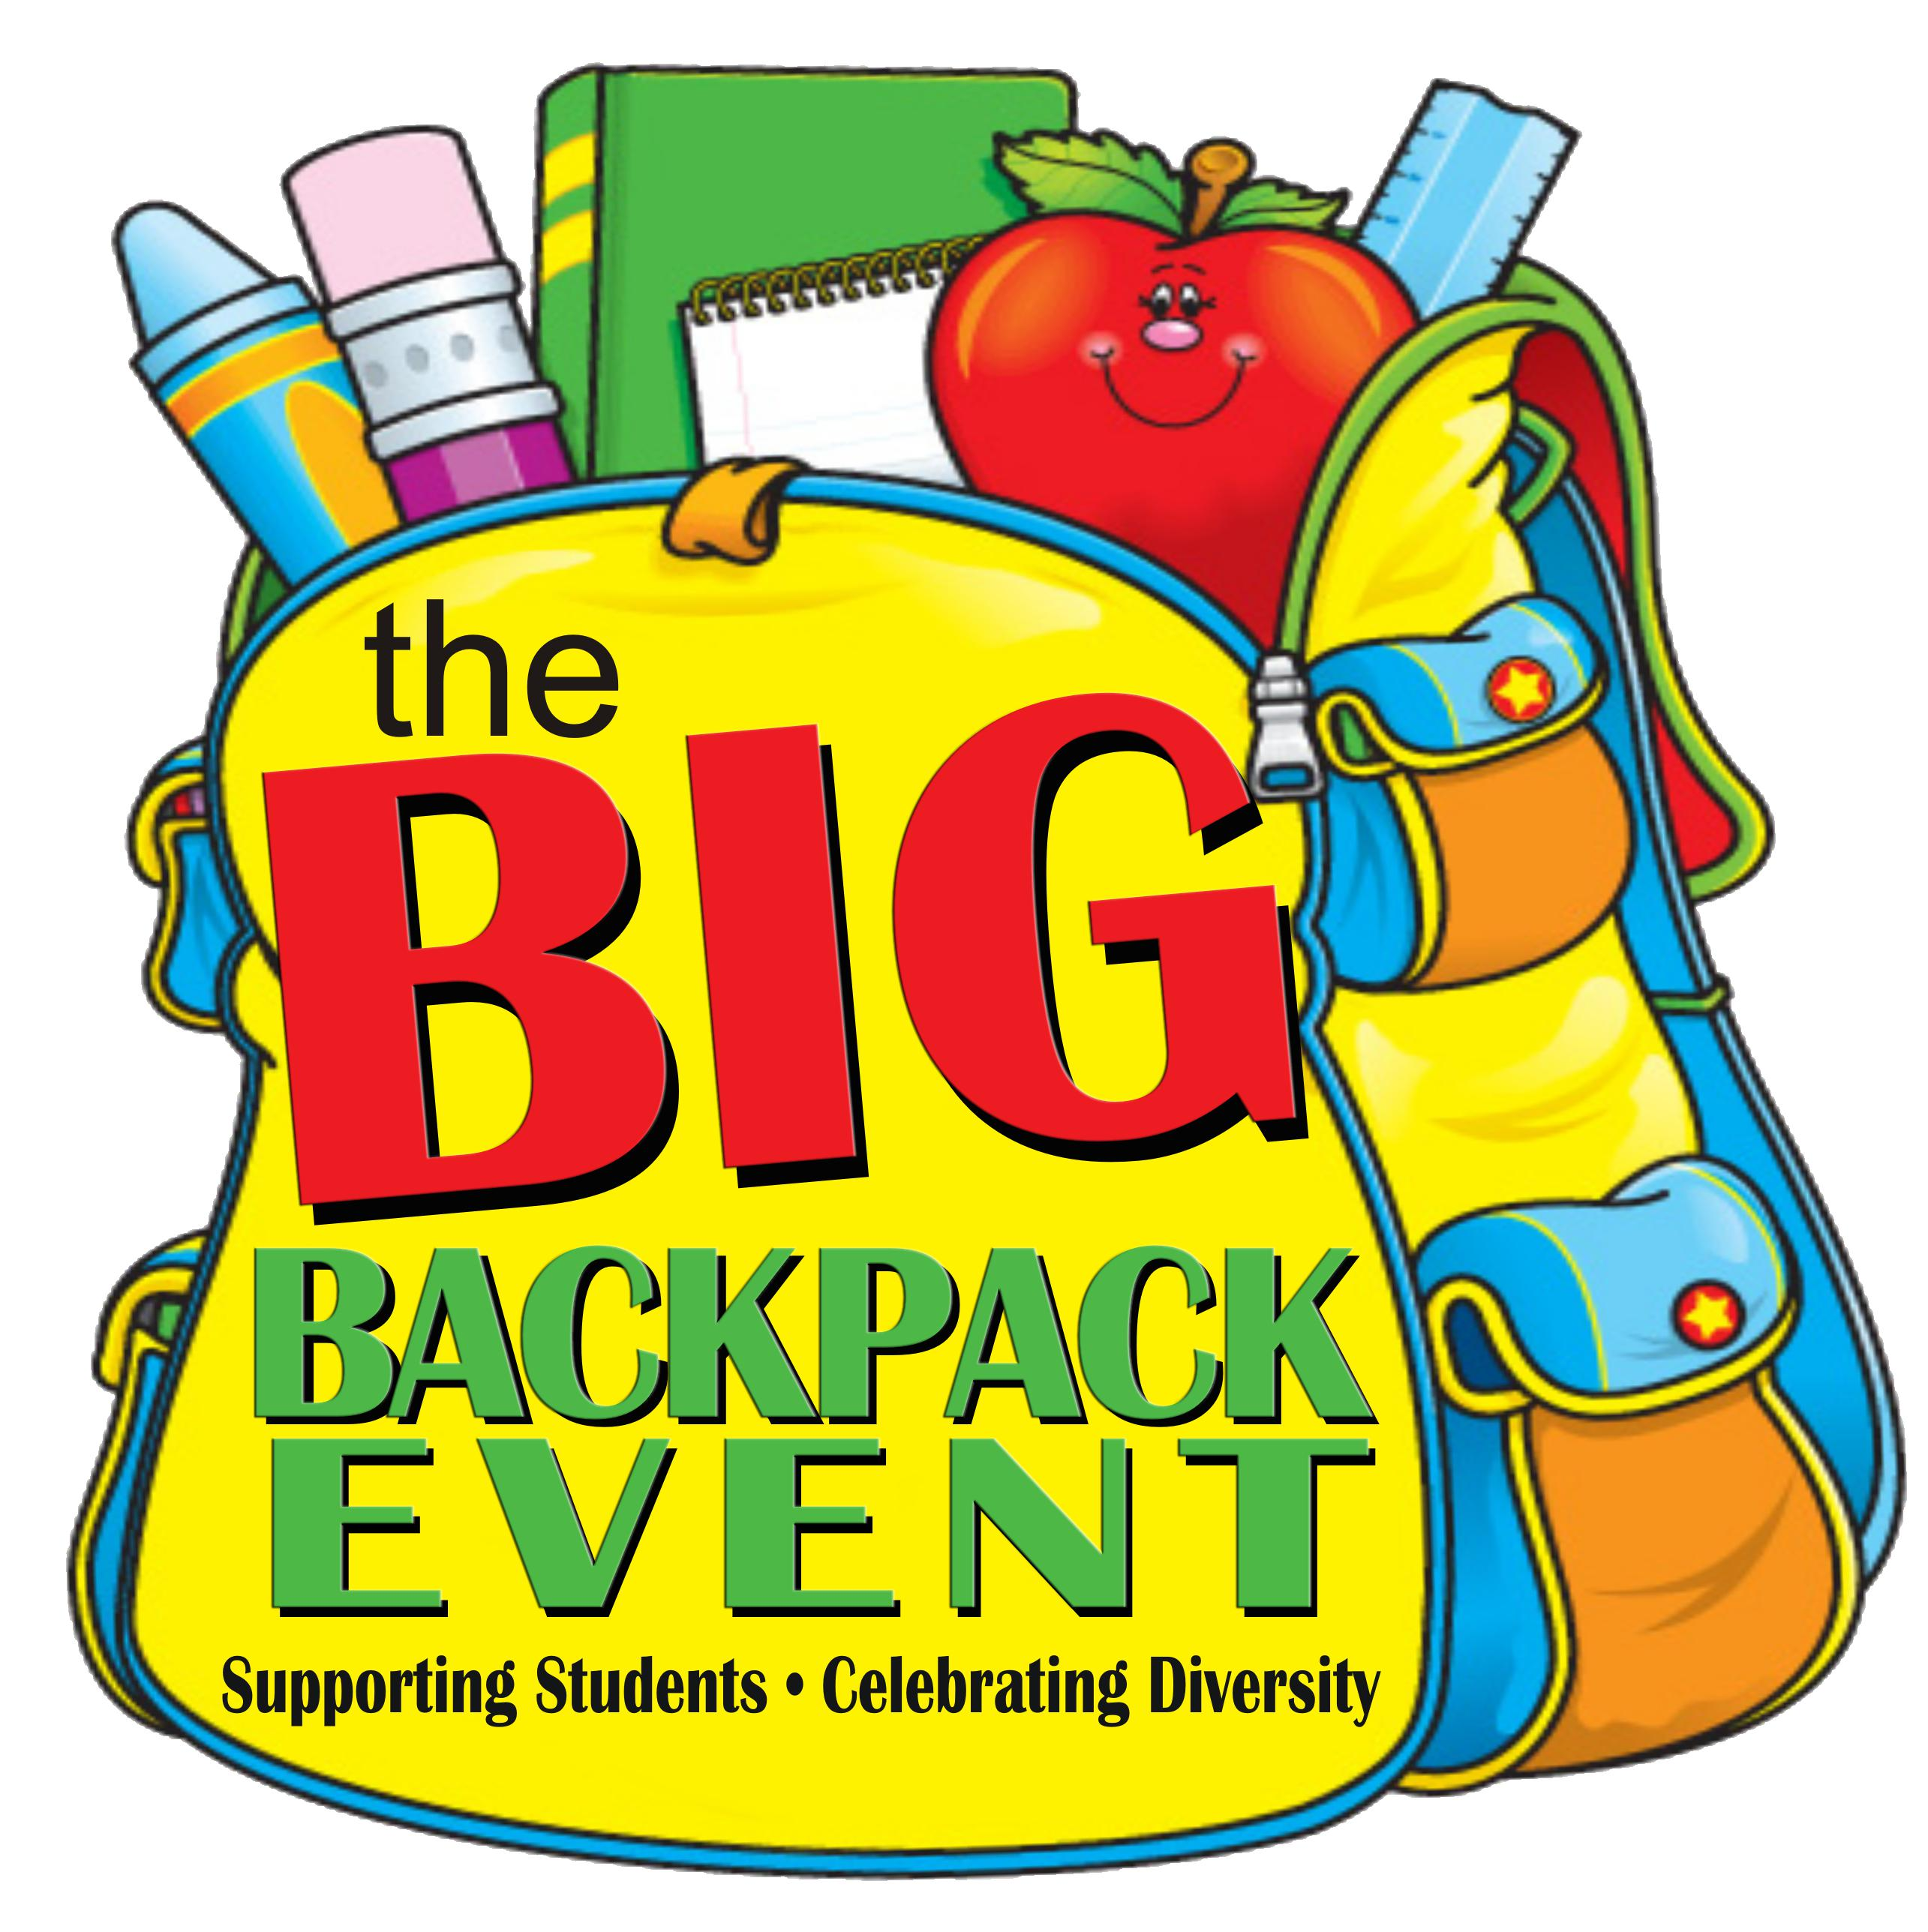 Big Backpack Event Gets Lee County Kids Ready For School